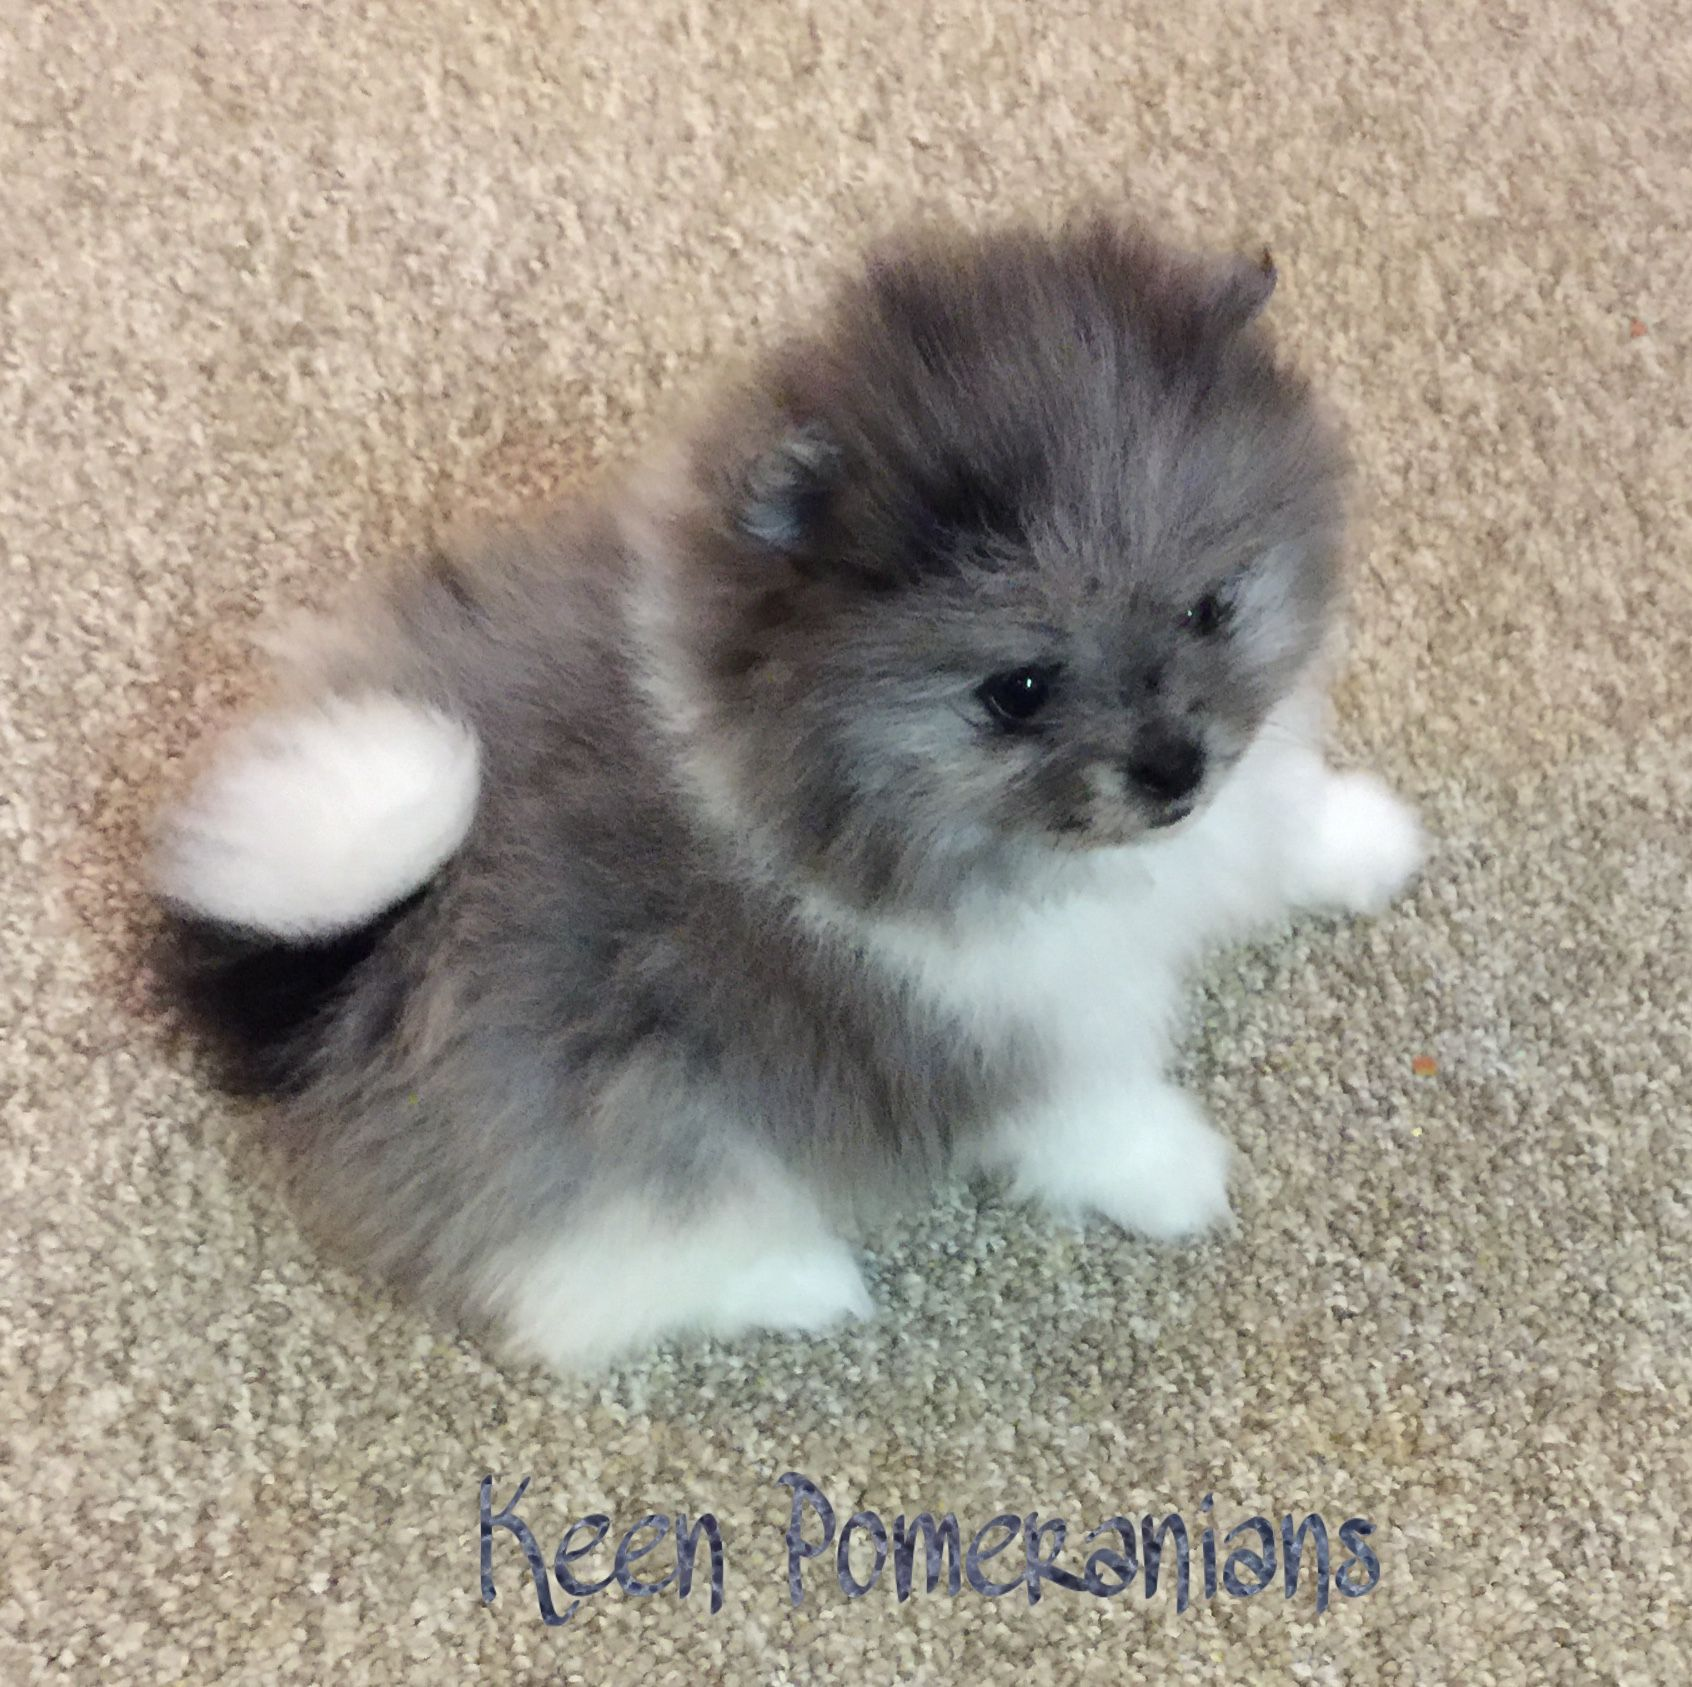 Blue merle parti image property of keen pomeranians merle blue merle parti image property of keen pomeranians nvjuhfo Image collections